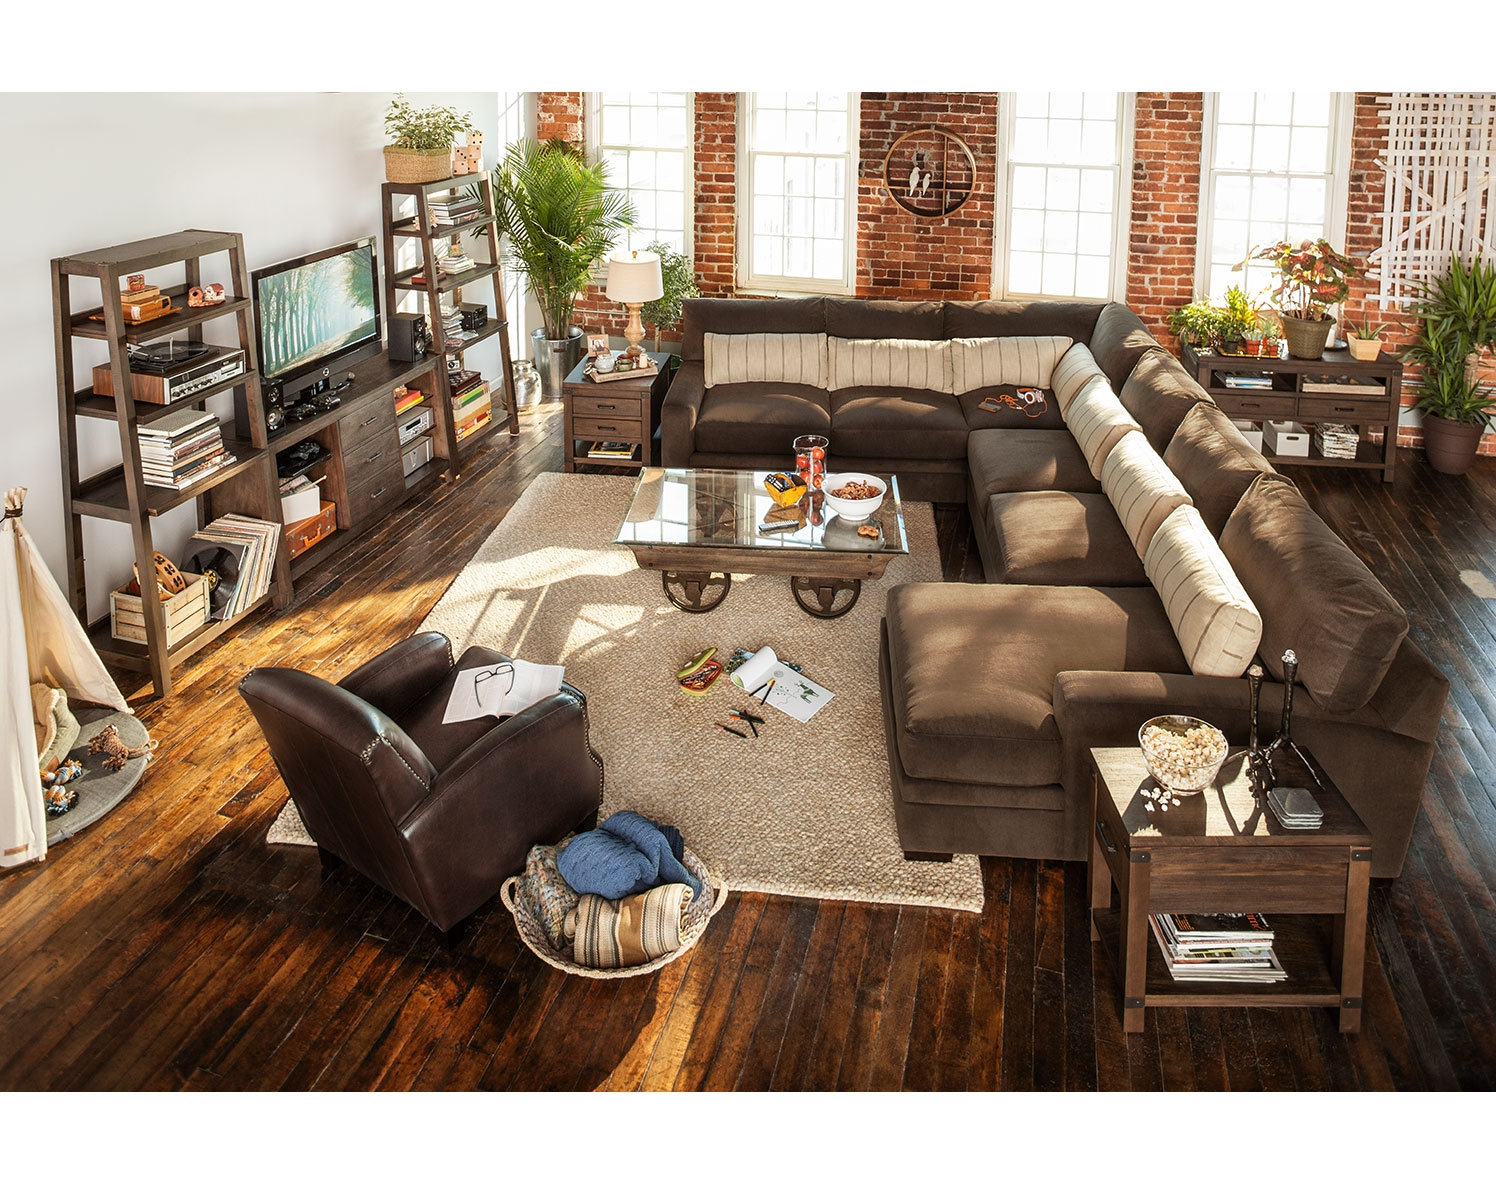 Value city furniture coffee tables and end tables roy home design Home design golden city furniture